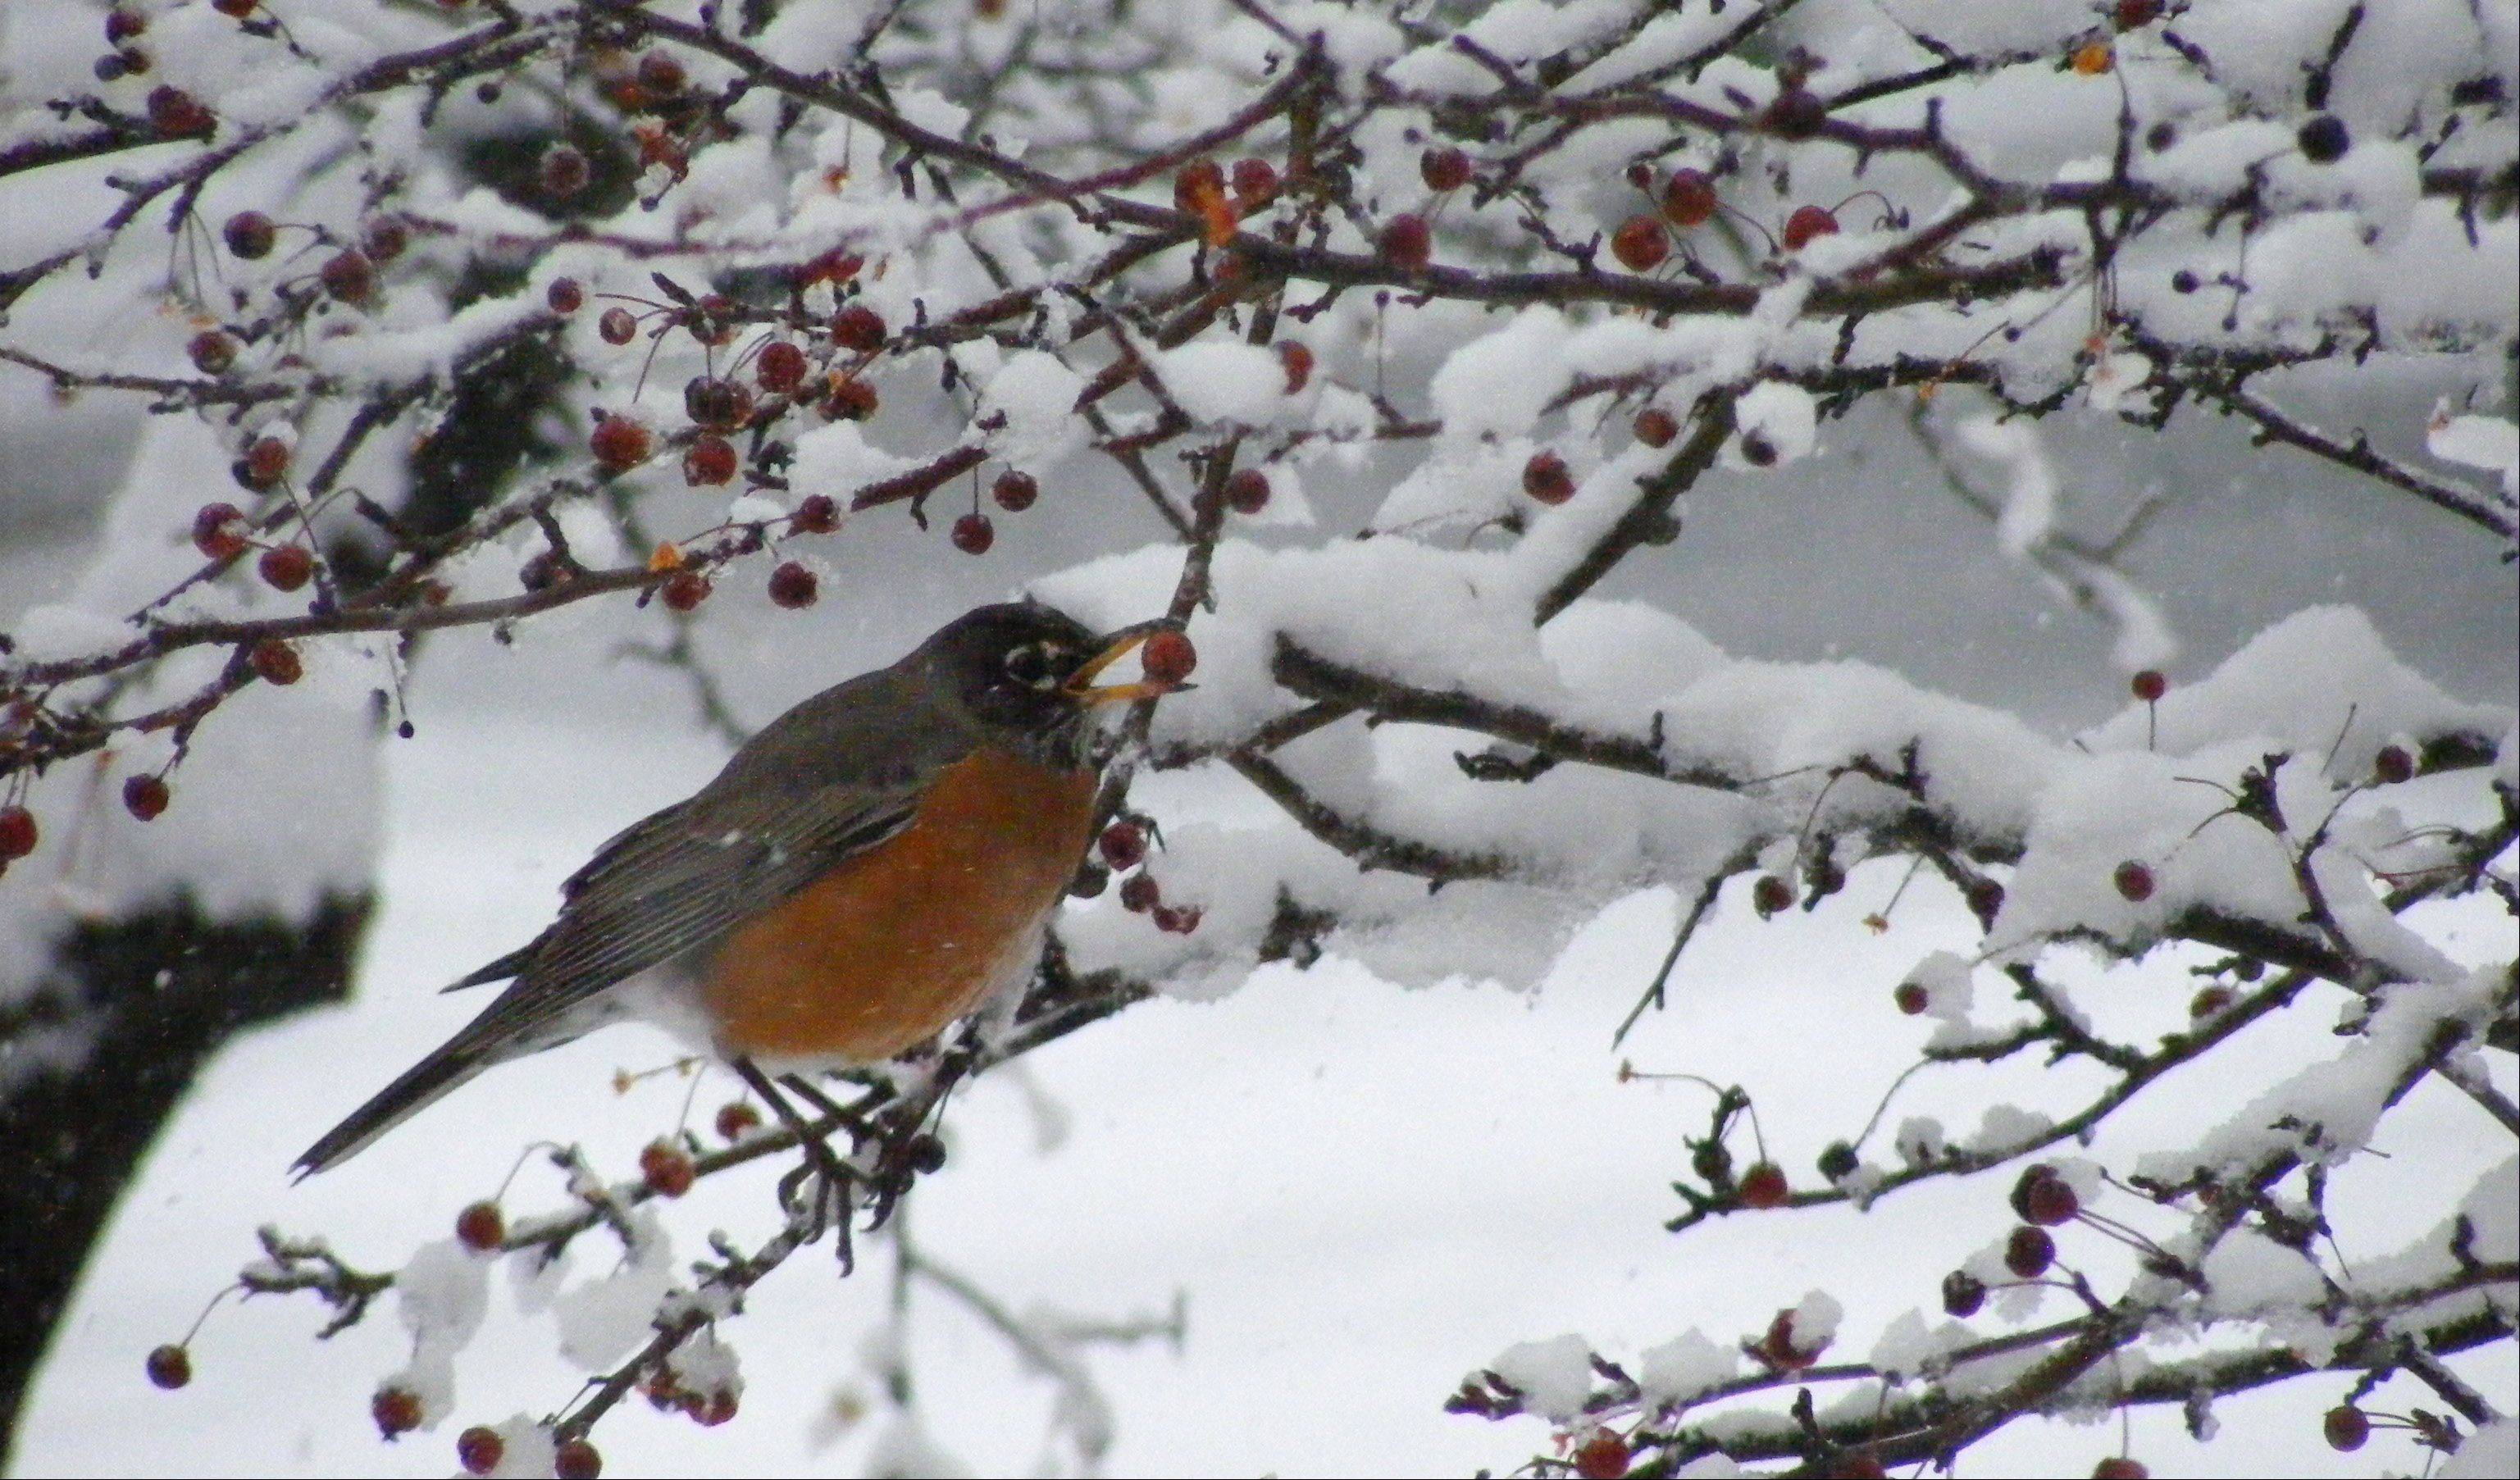 I took this picture from my kitchen window. At first glance I noticed some birds eating berries during the snowstorm, then I noticed the birds were robins!